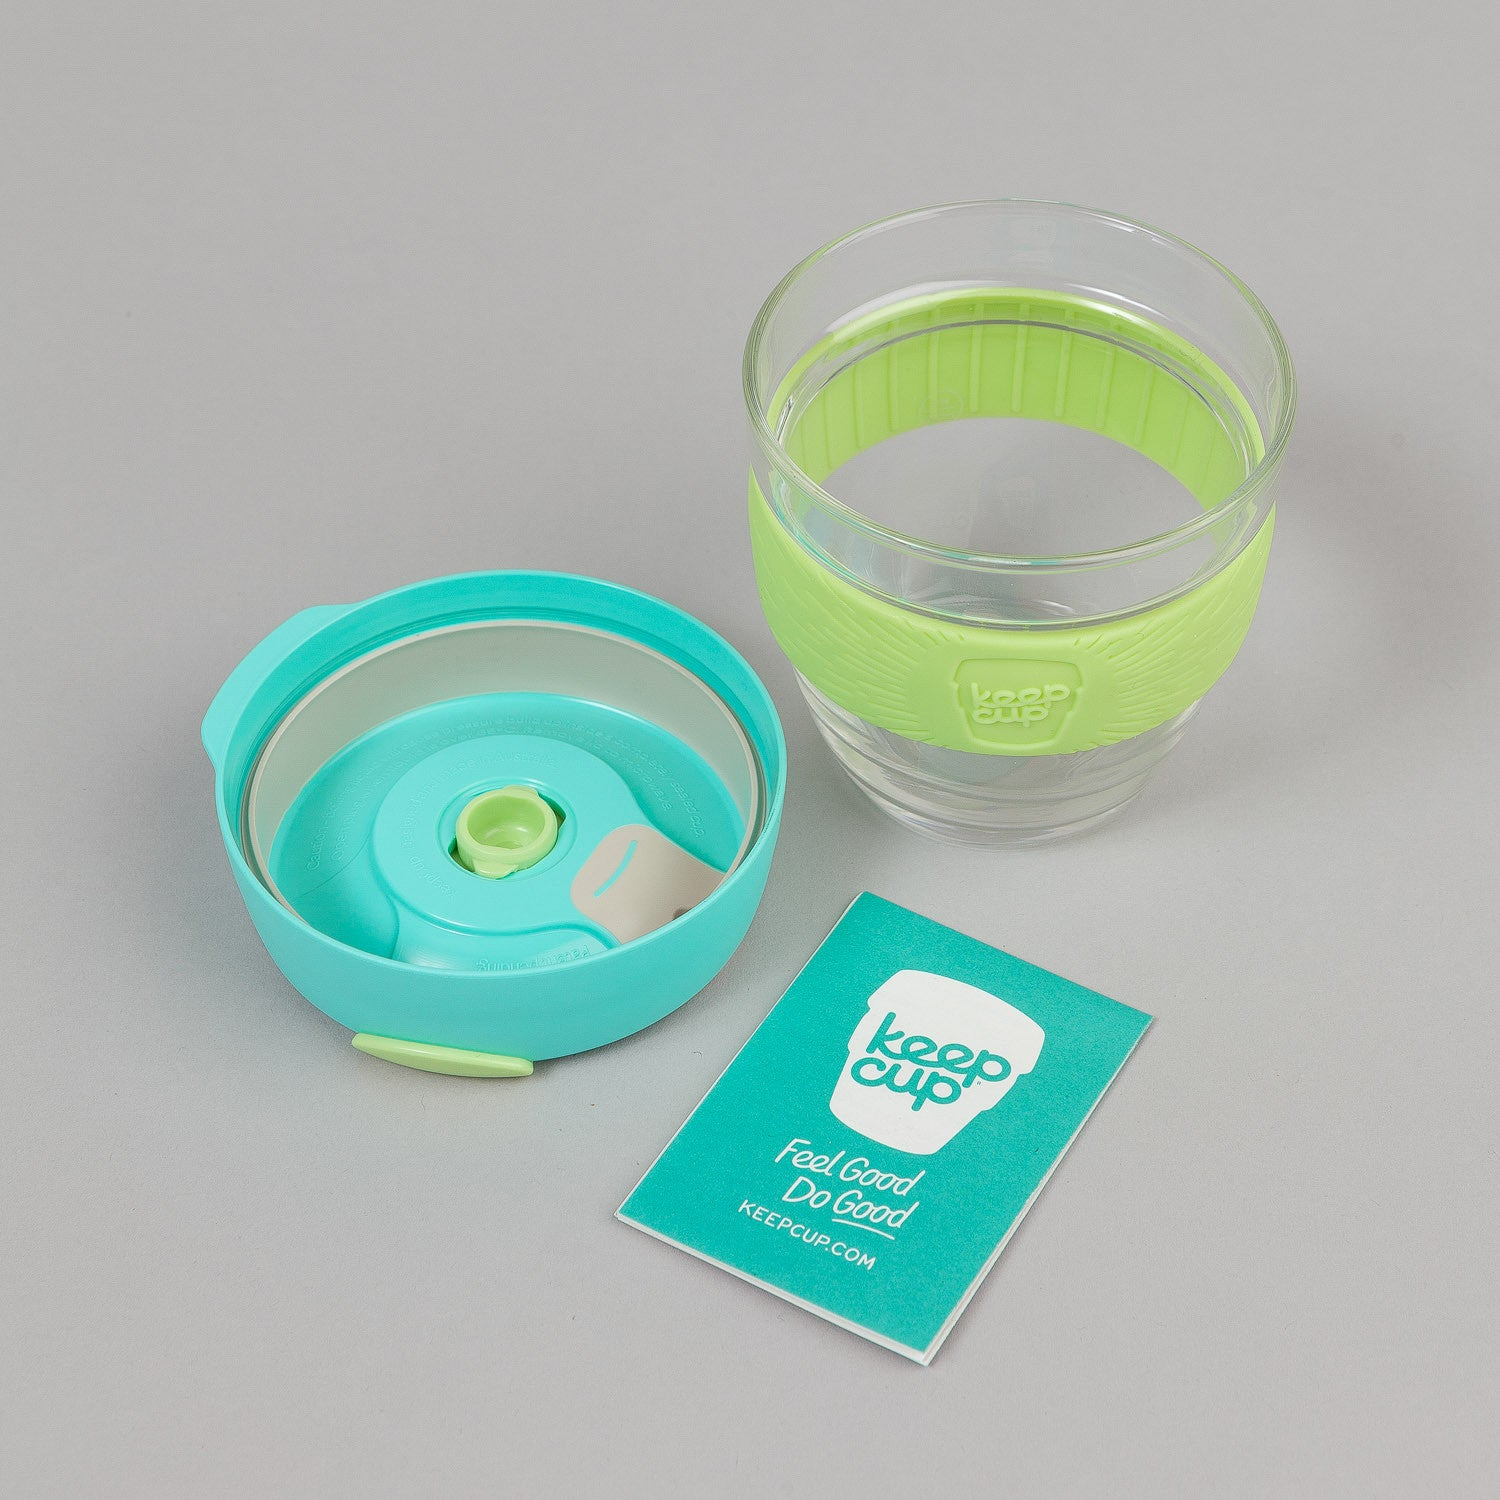 KeepCup Magic 8oz Small Glass Coffee Cup - Mint